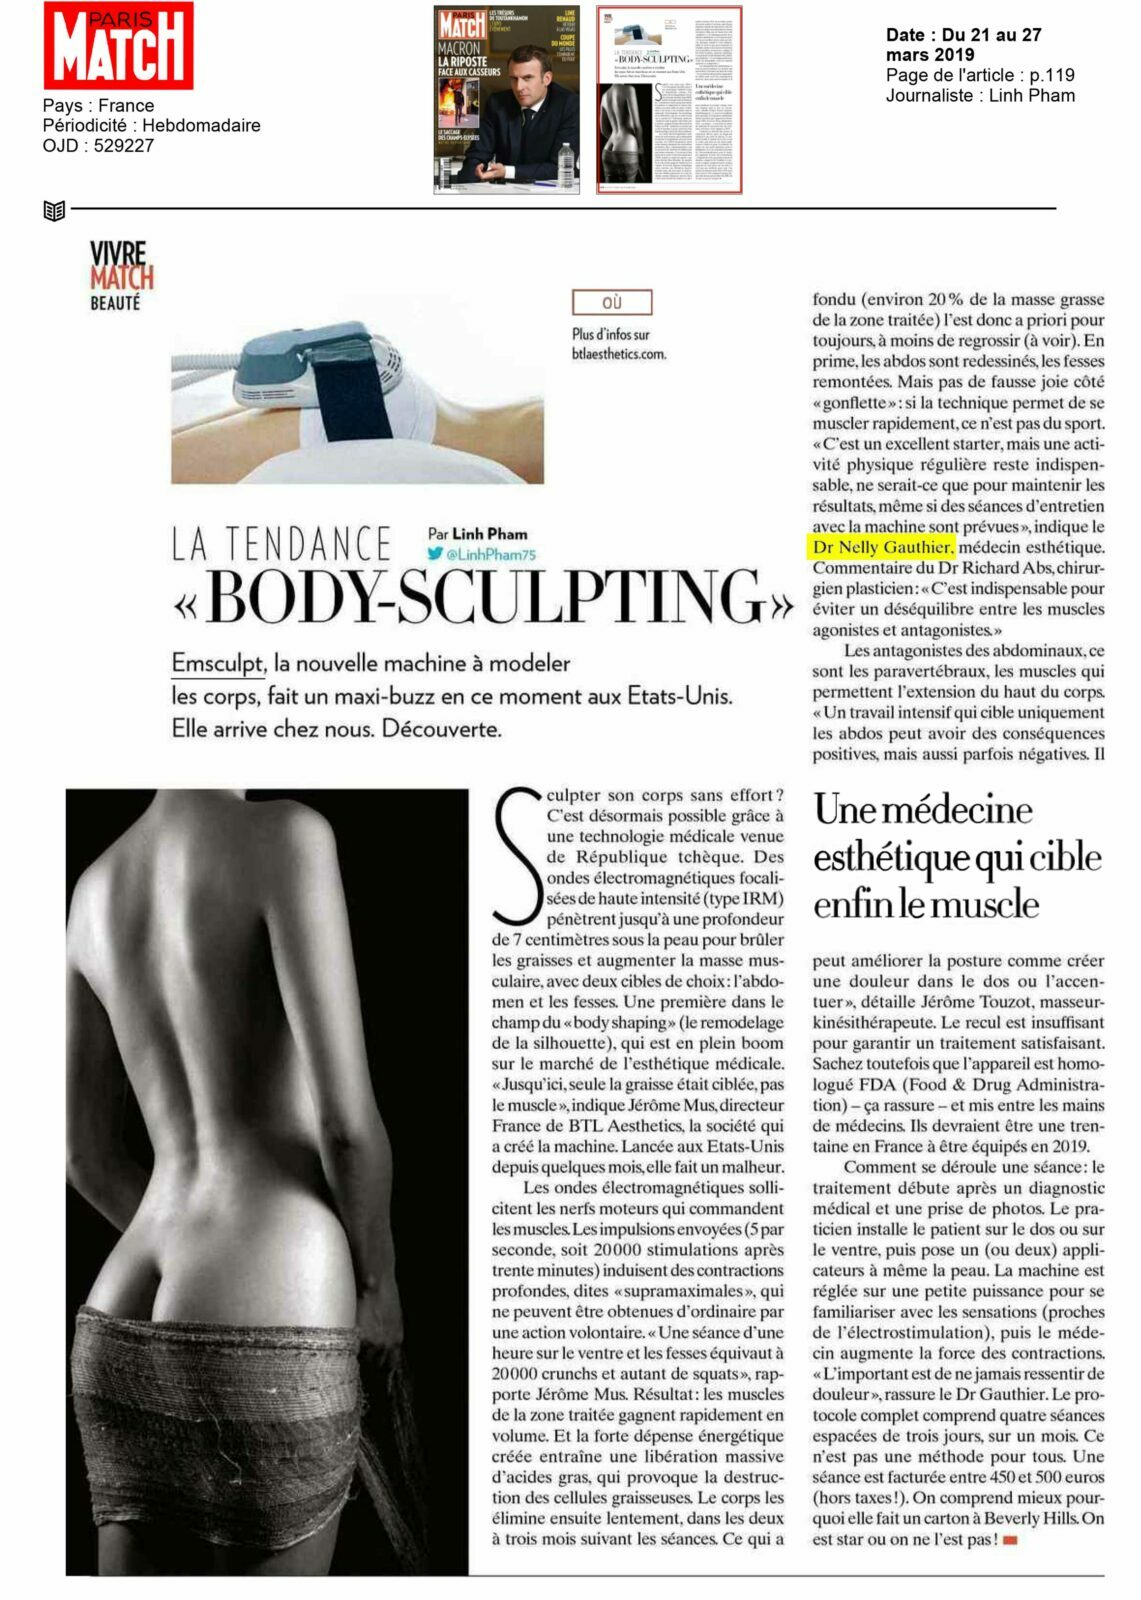 Tendance du Body Sculpting à Paris - Interview Paris Match | Dr Gauthier